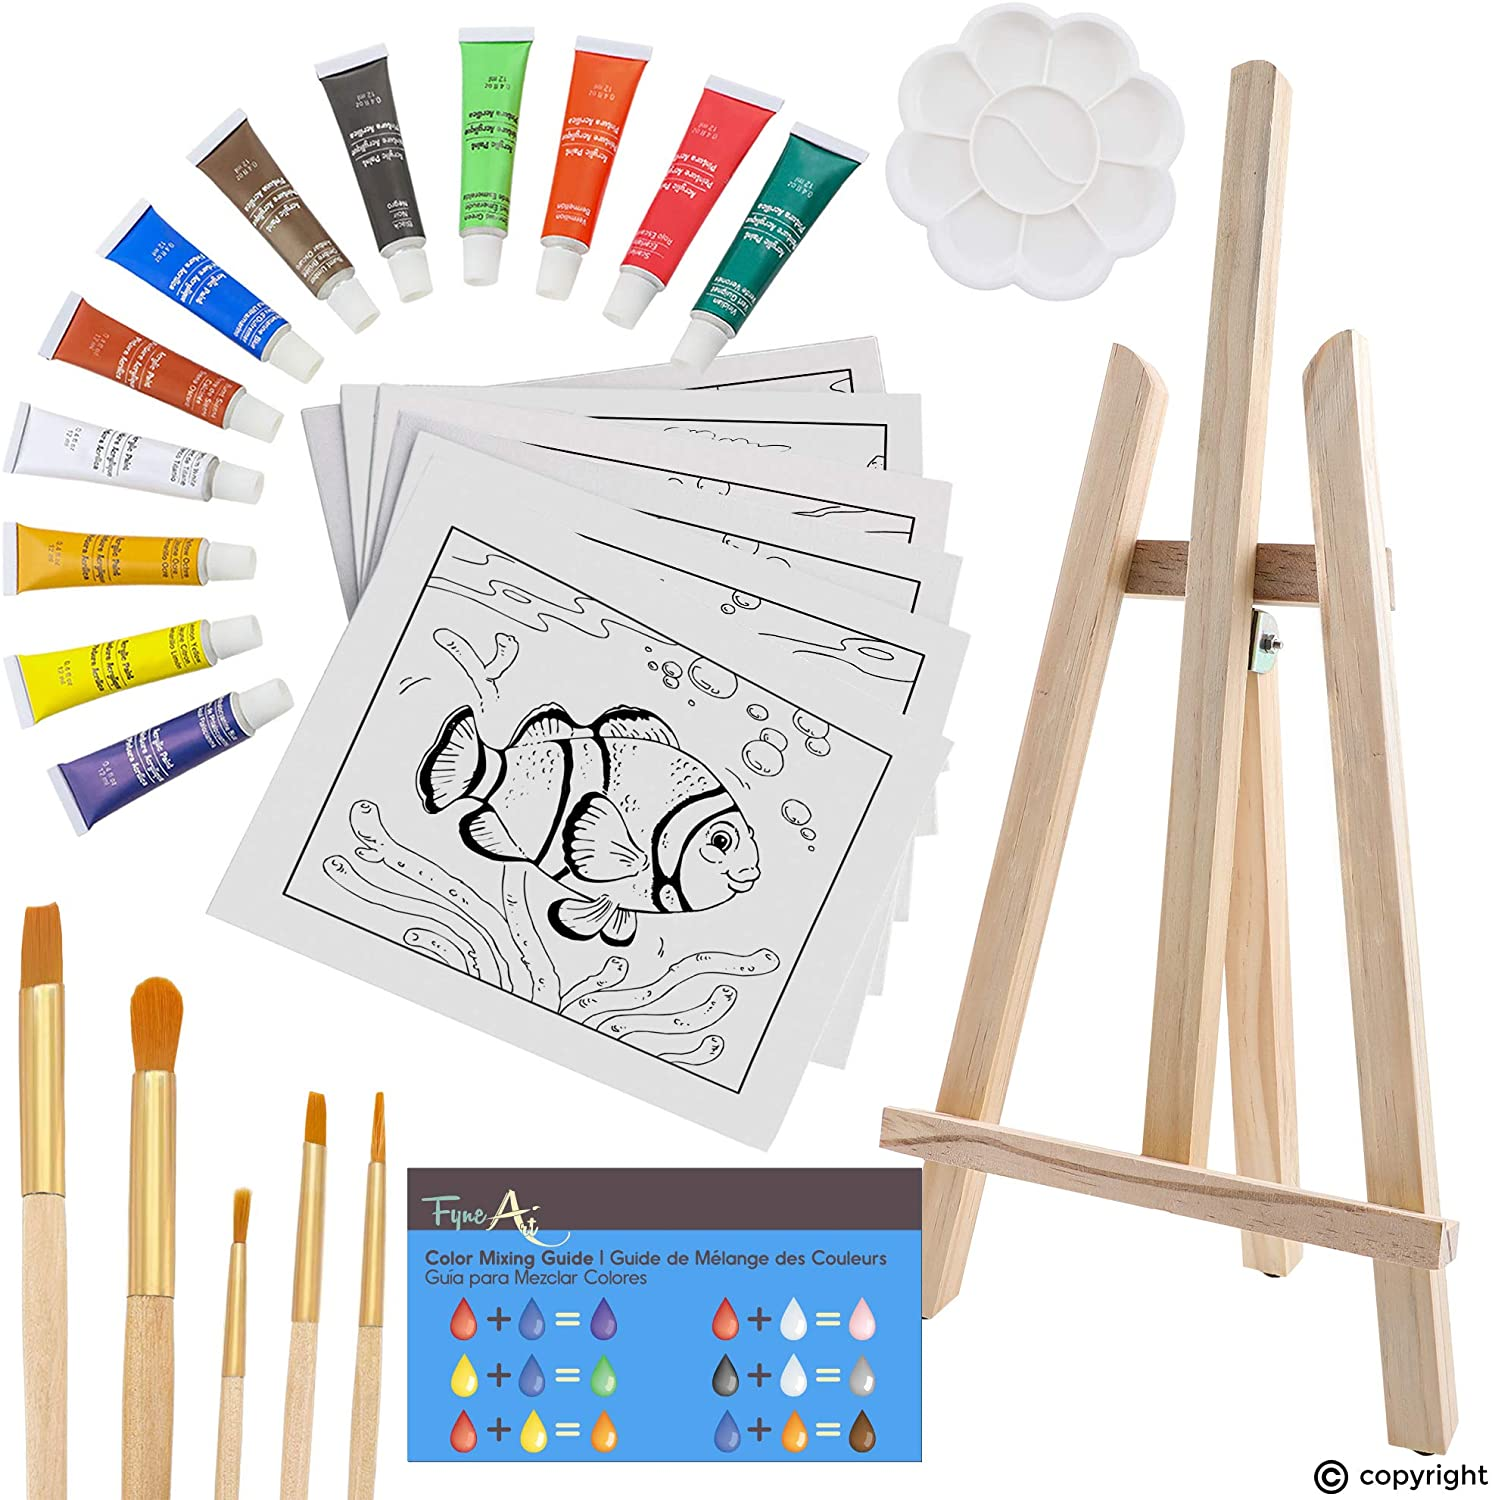 FyneArt, 26 Piece Kids Art Painting Set with Wood Easel, 6 Marine Animals Themed Canvases, 12 Color Acrylic Paints, 5 Paint Brushes, Palette. Arts Studio for Artist Children Ages 6+ Years